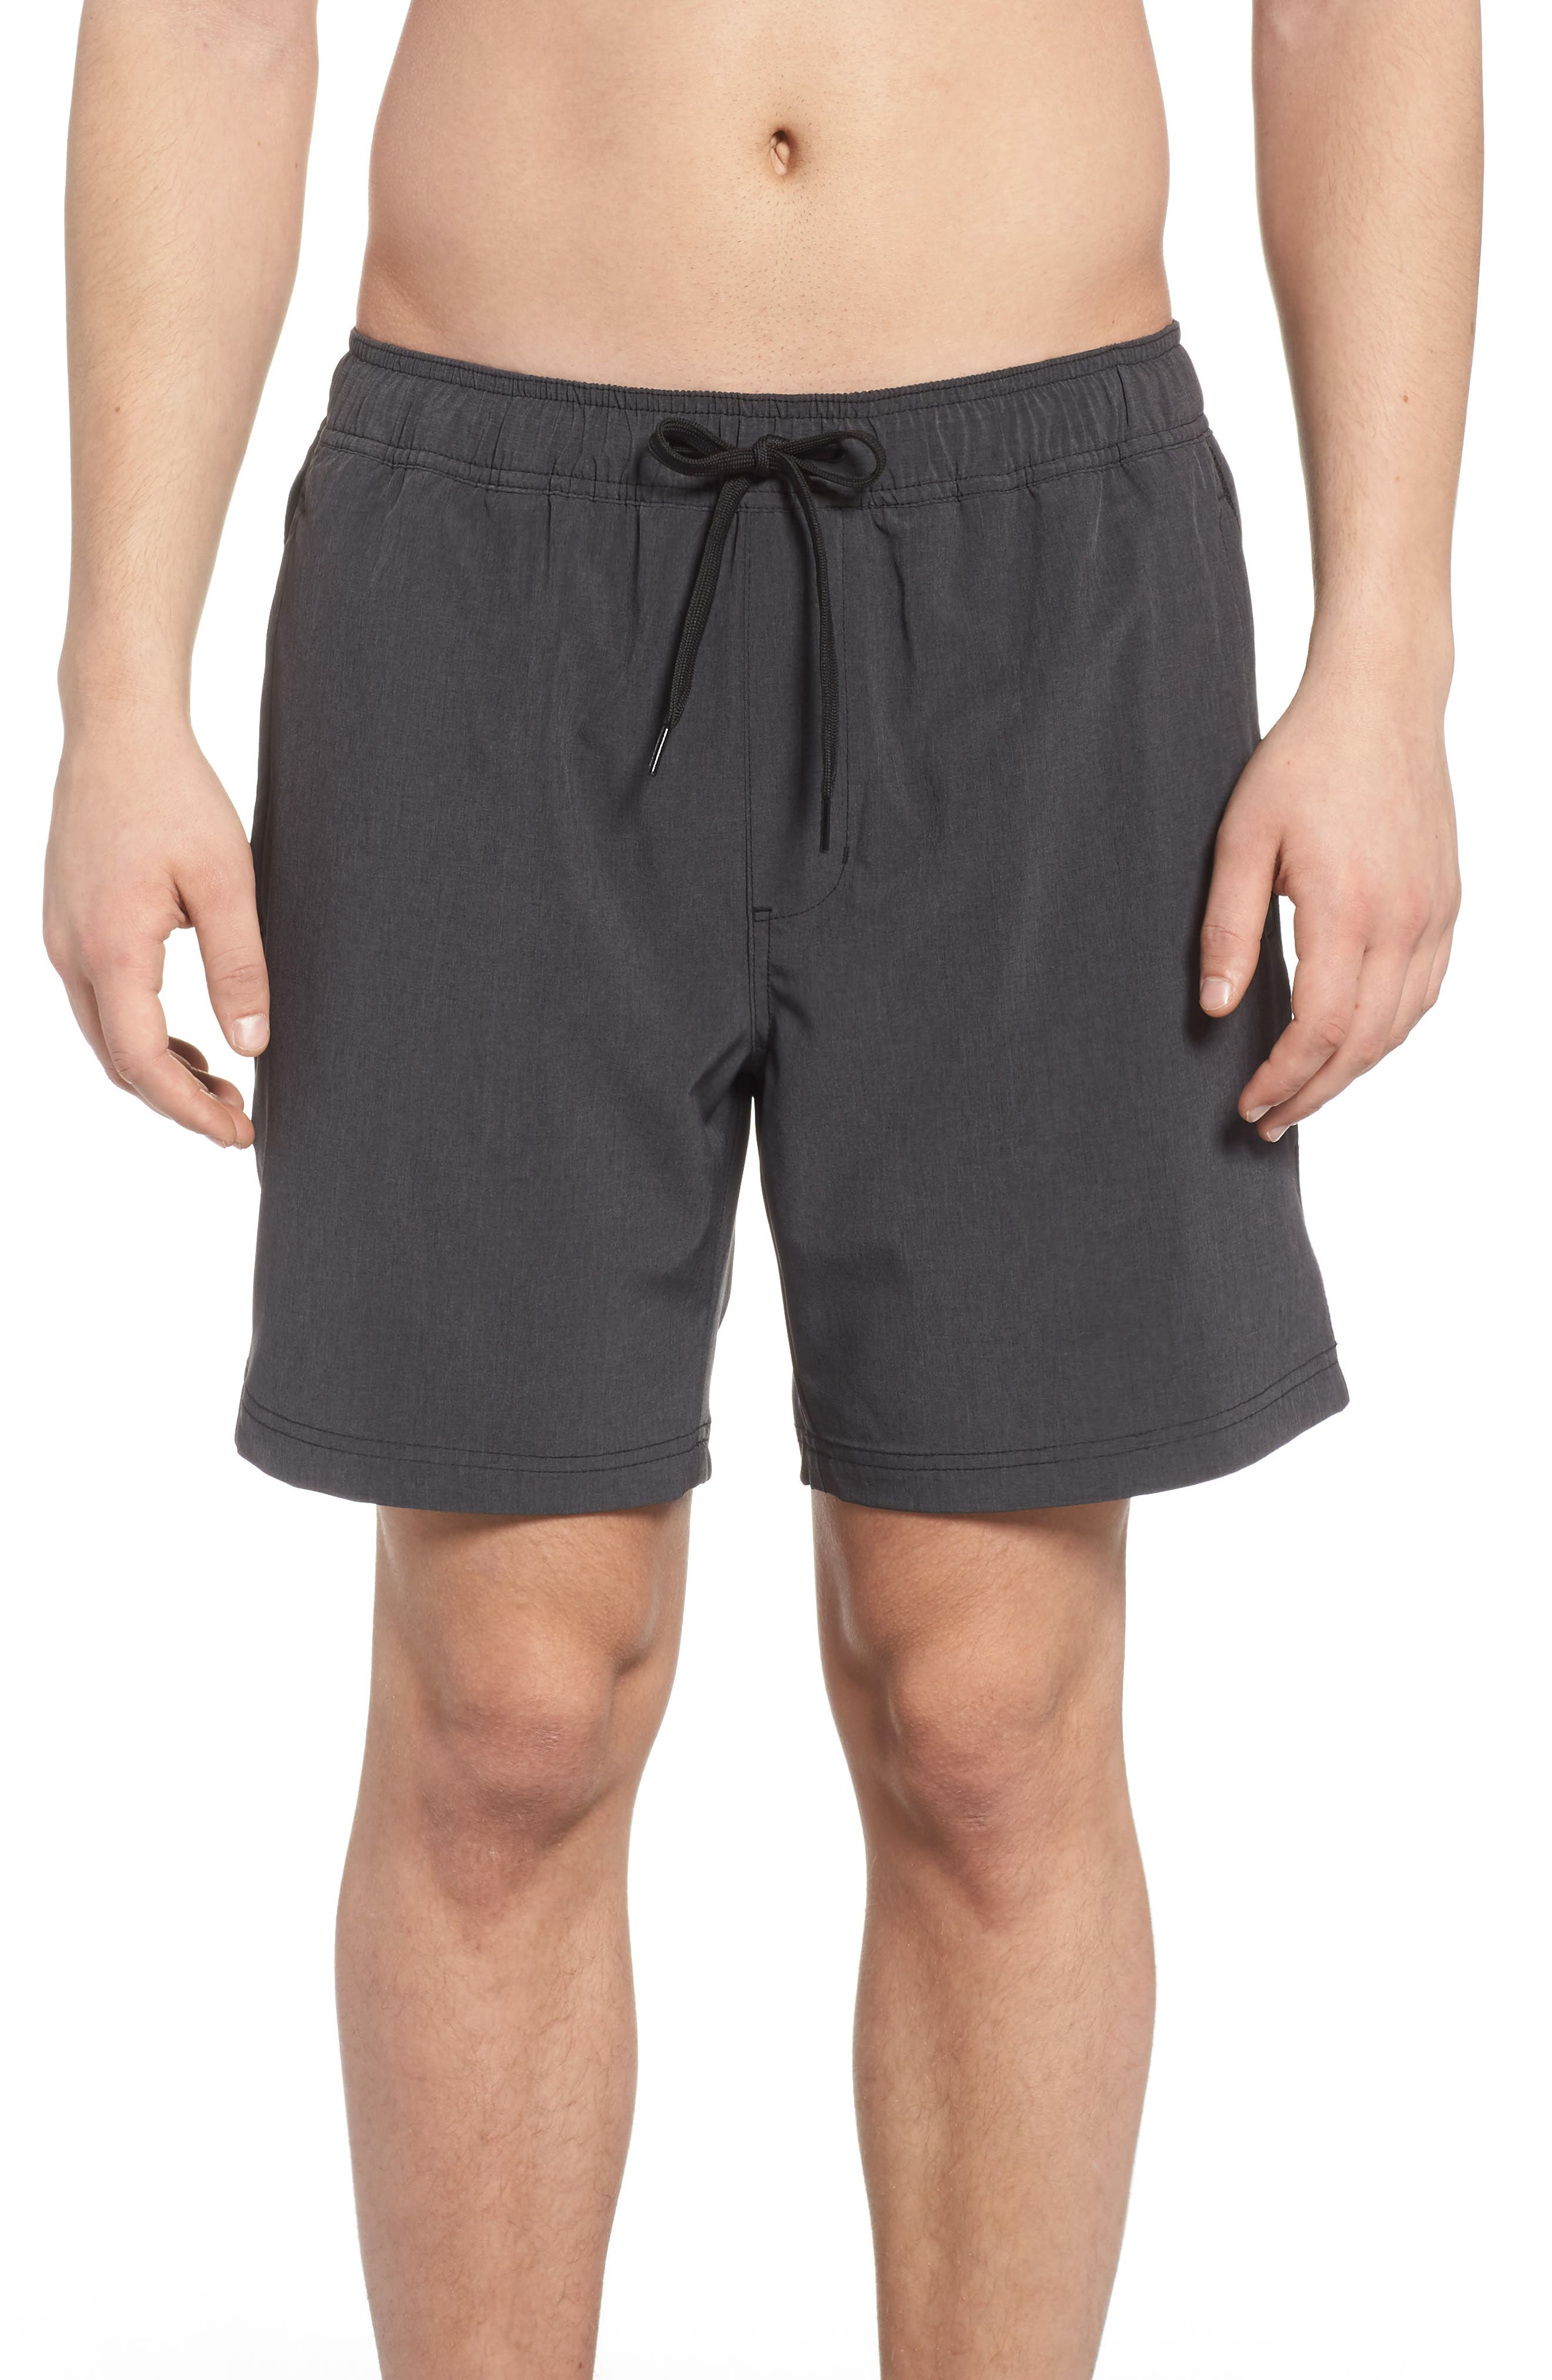 Stretch Swim Trunks,                             Main thumbnail 1, color,                             Black Oxide Heather